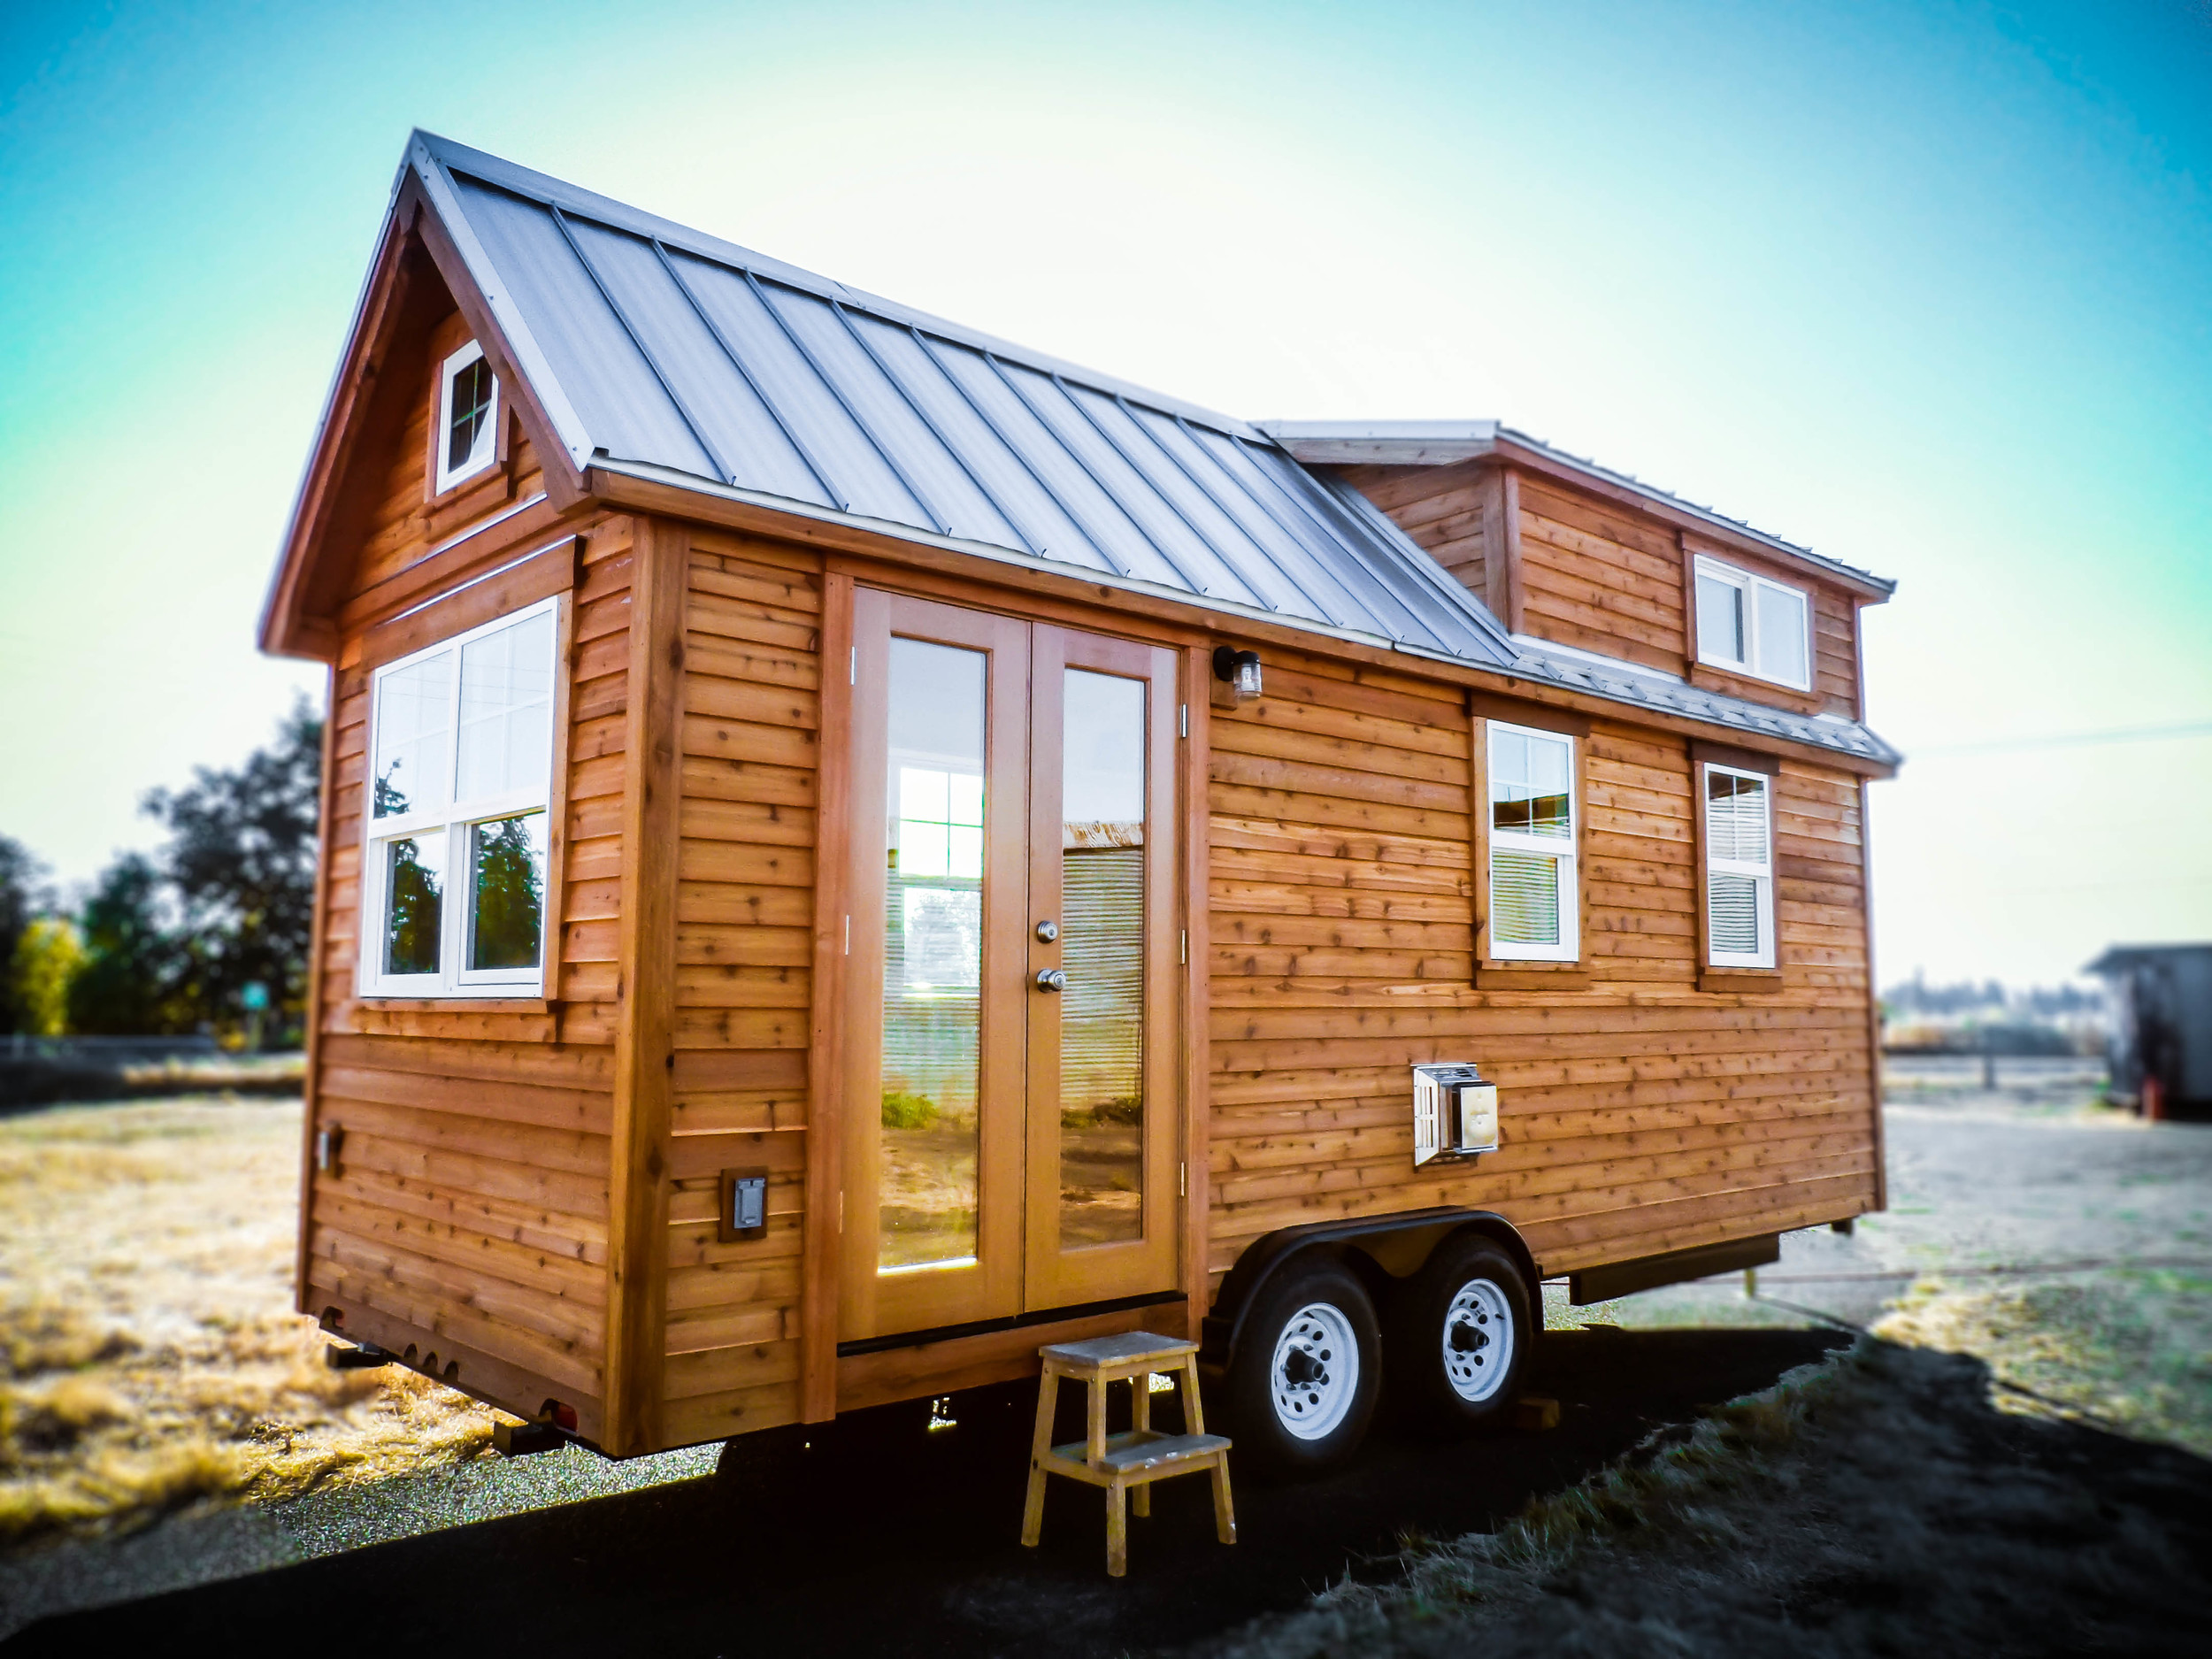 Tiny home with wheels